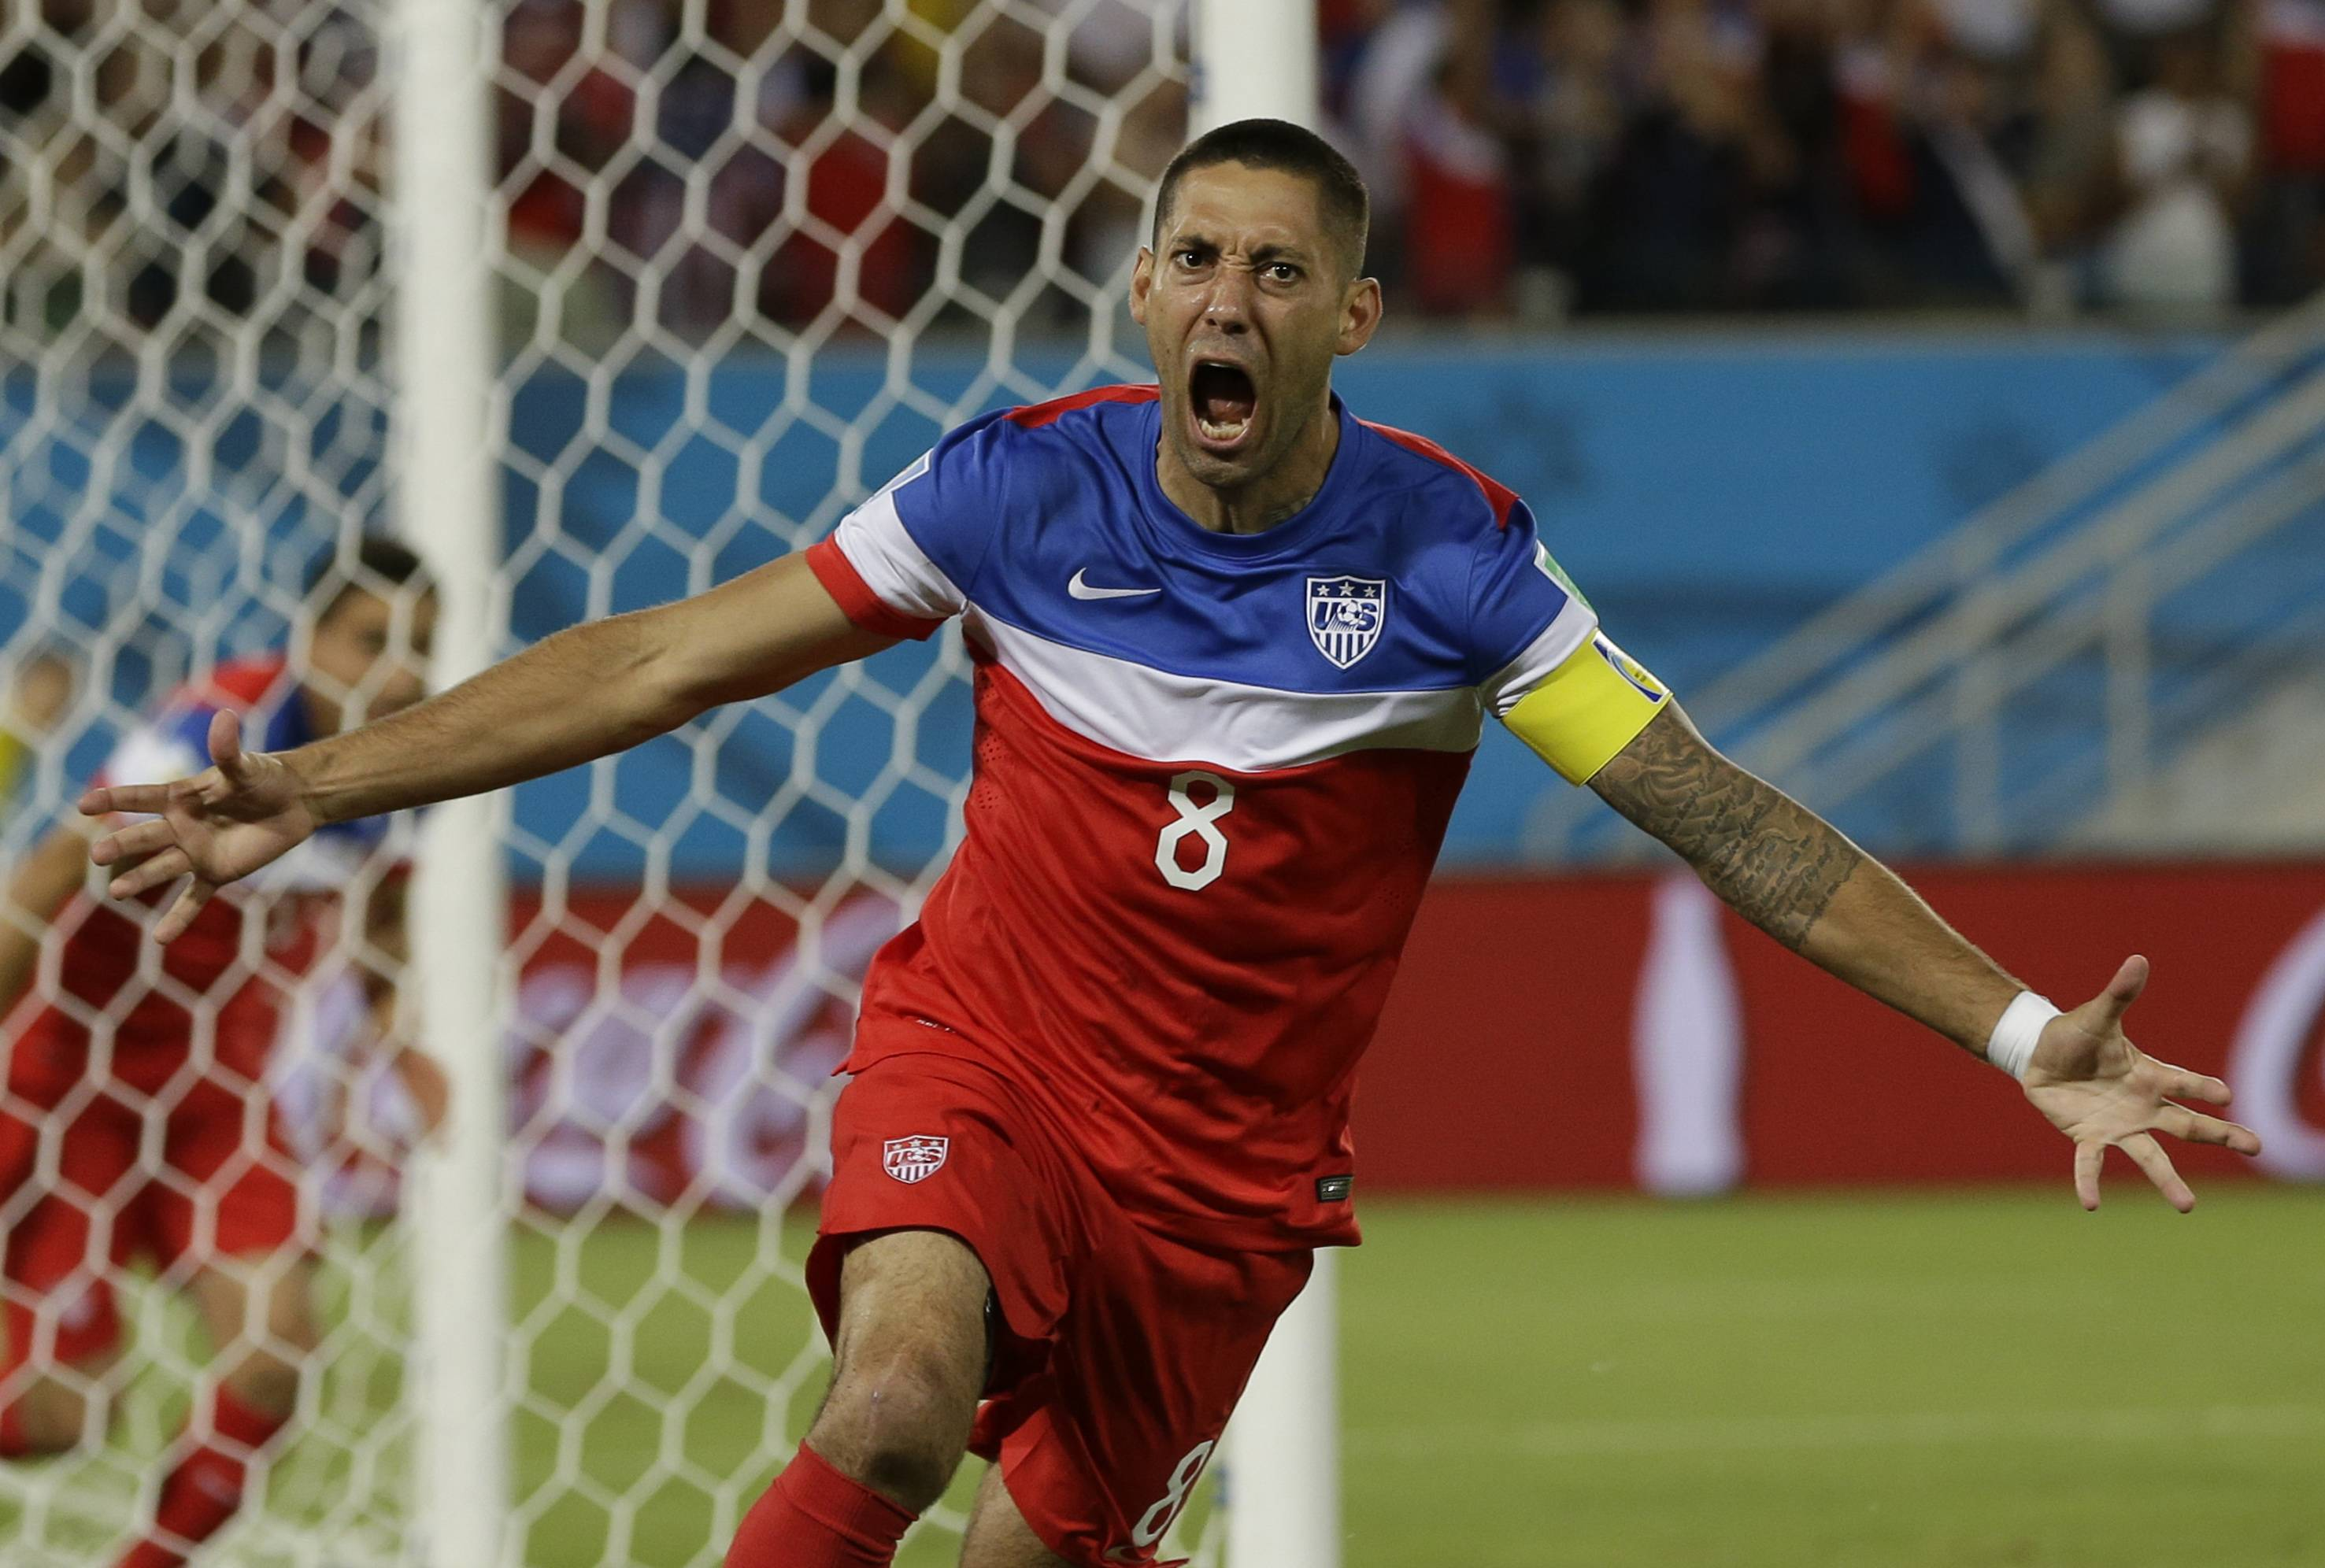 USA bruised but beats Ghana 2-1 in World Cup thriller